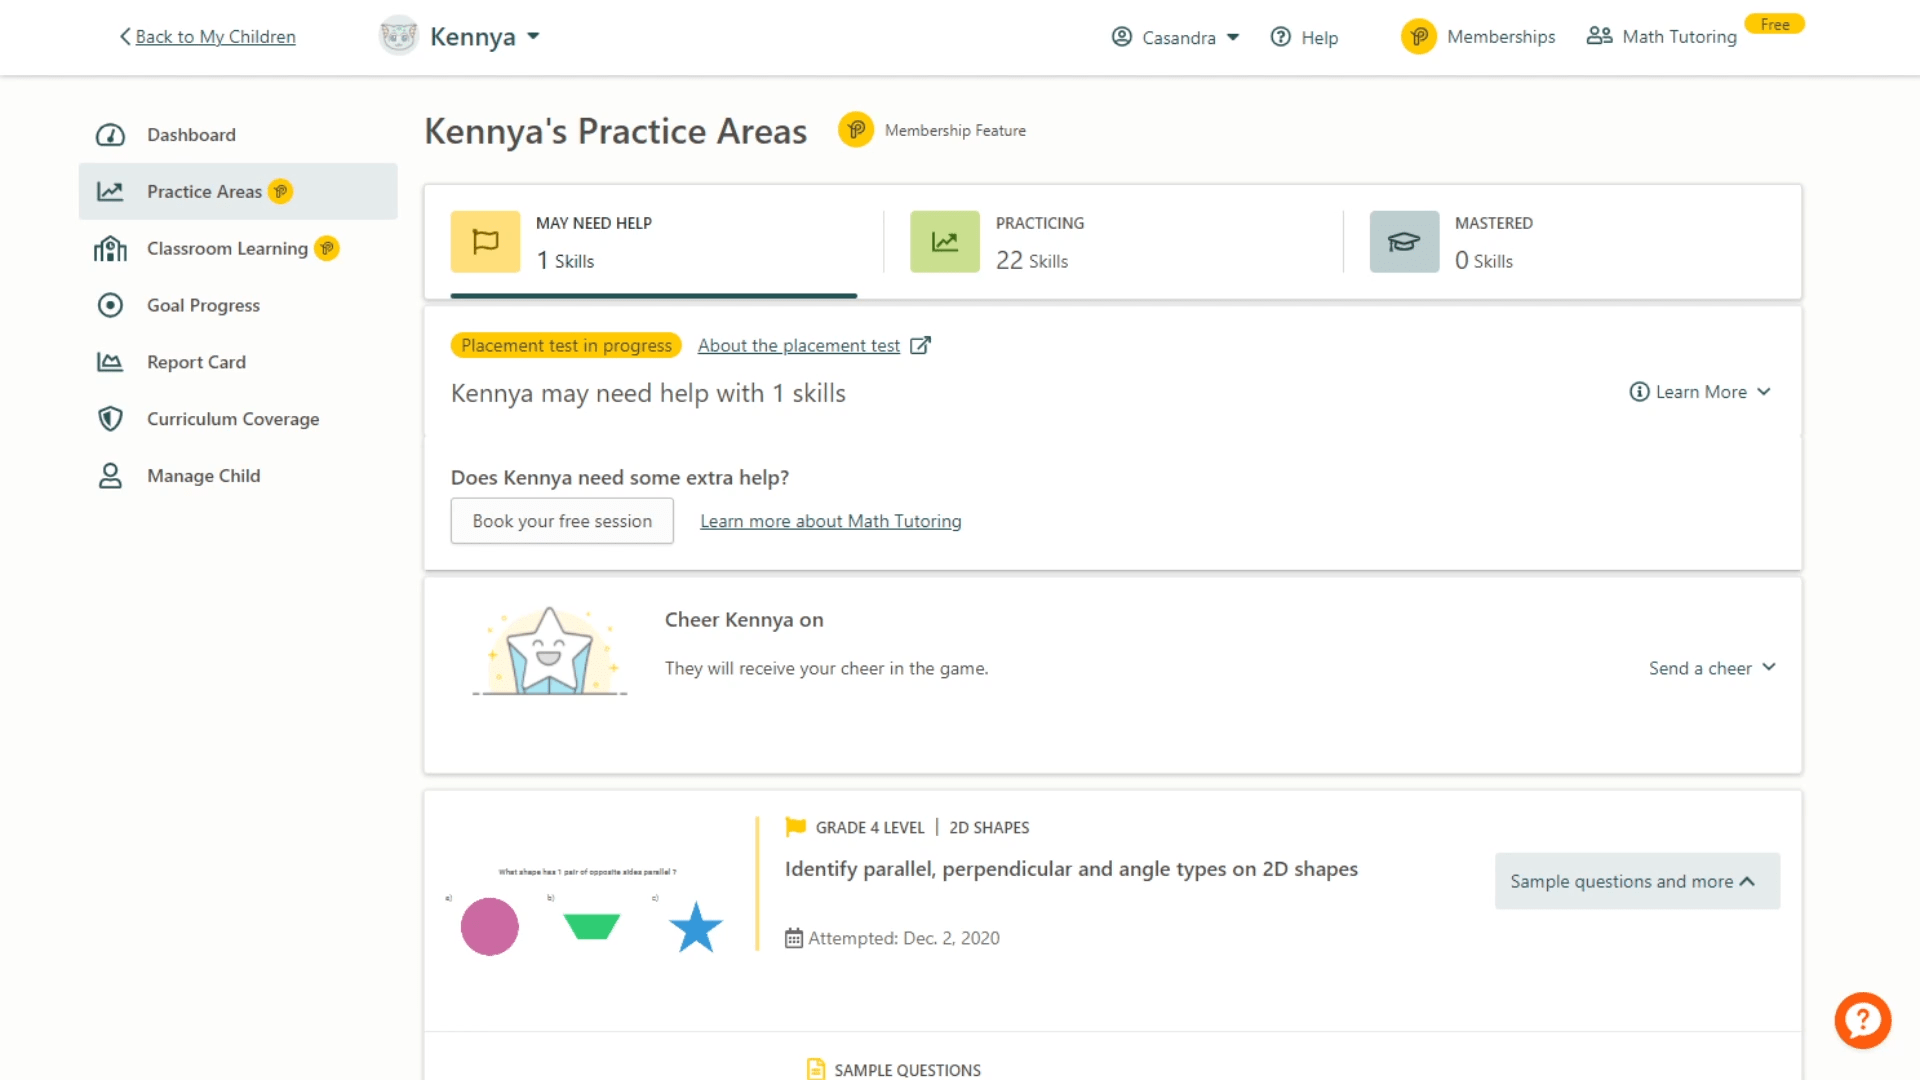 Image of a Prodigy parent dashboard, showing the Practice Areas Premium feature